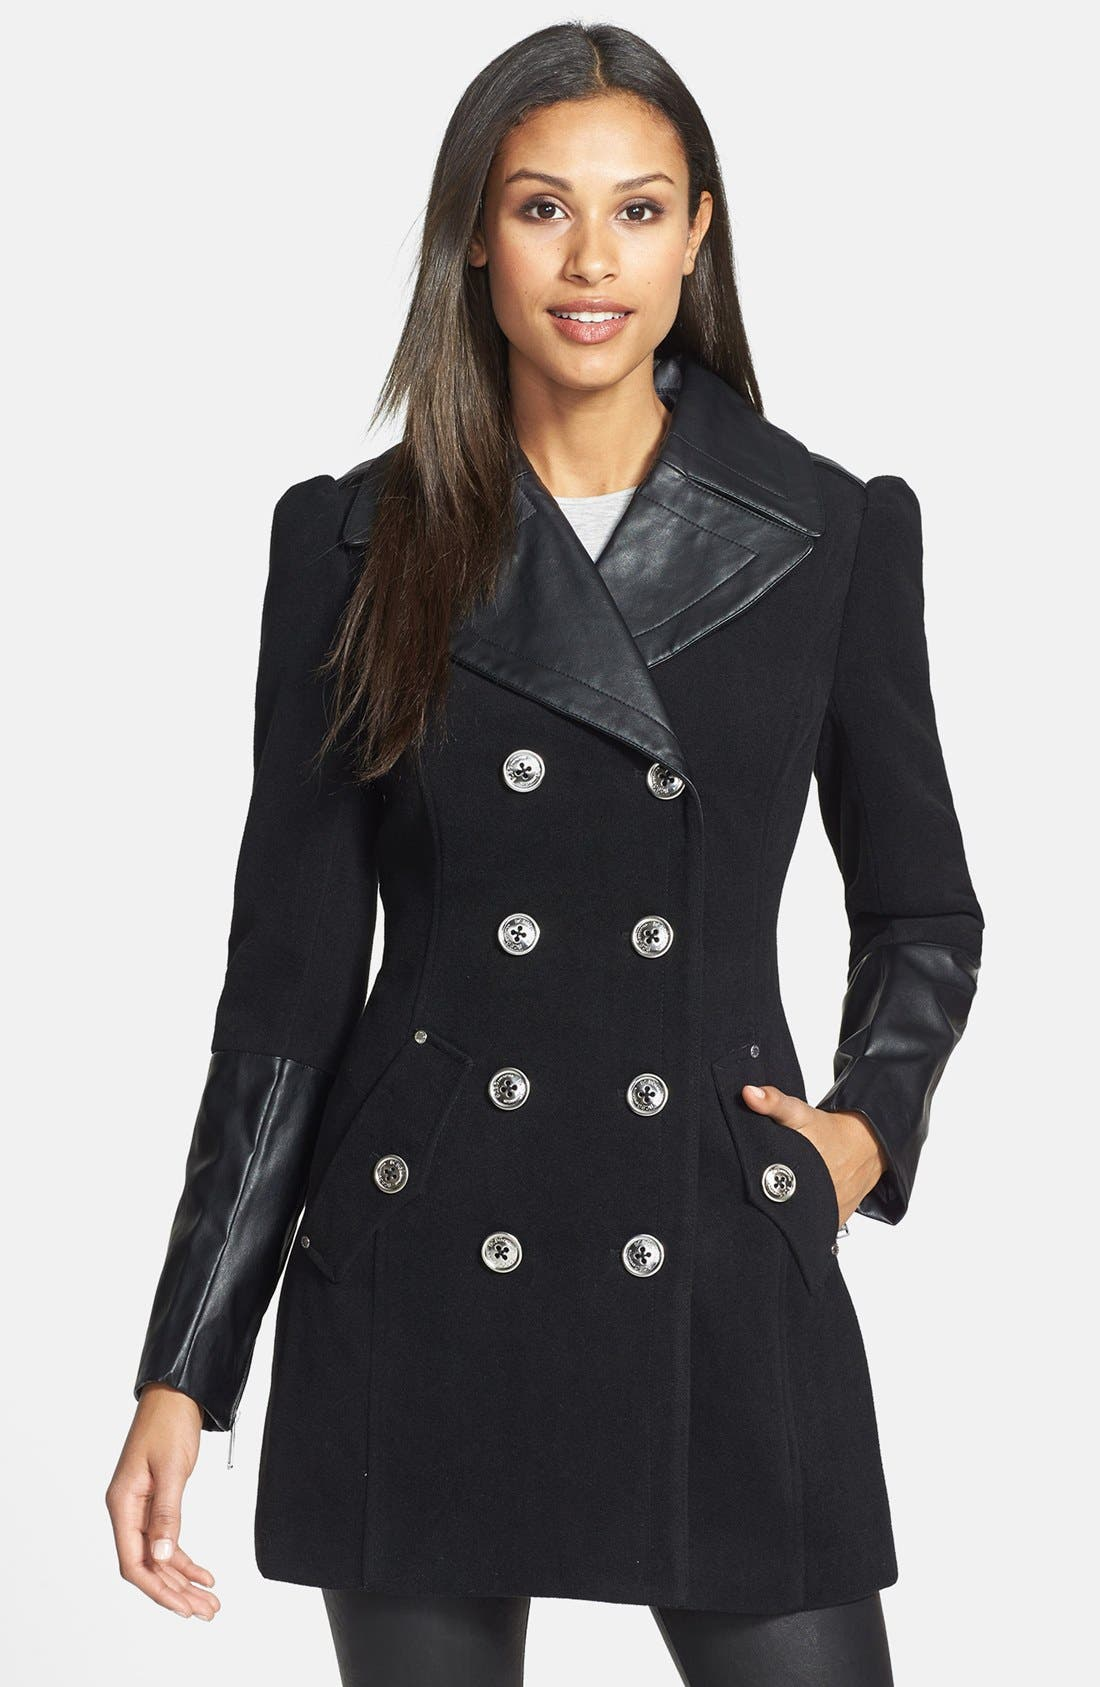 Alternate Image 1 Selected - BCBGeneration Faux Leather Trim Military Peacoat